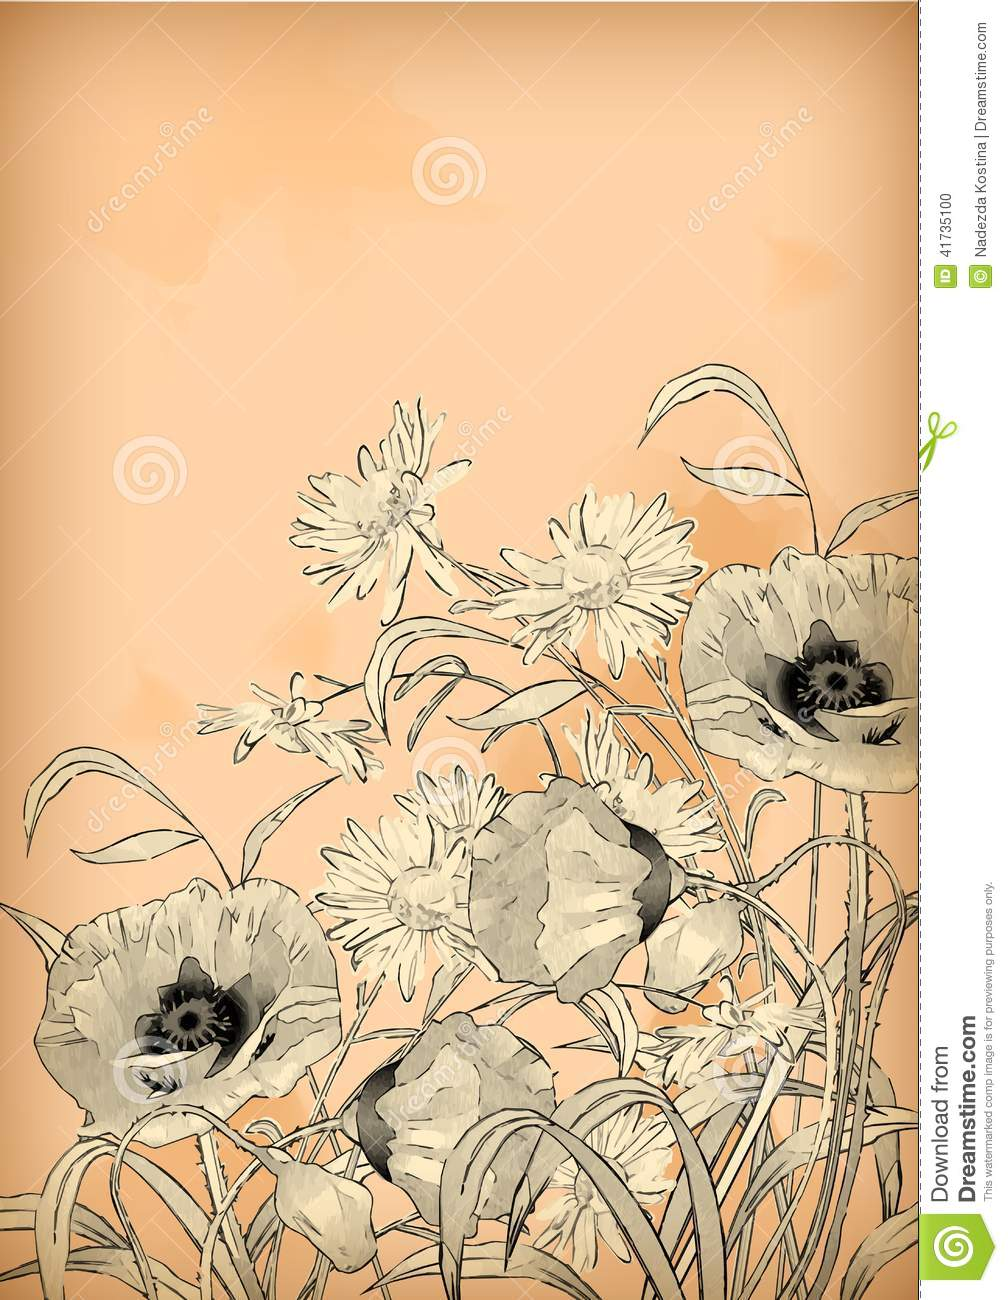 Watercolor Pencil Hand Drawing Flowers Stock Illustration